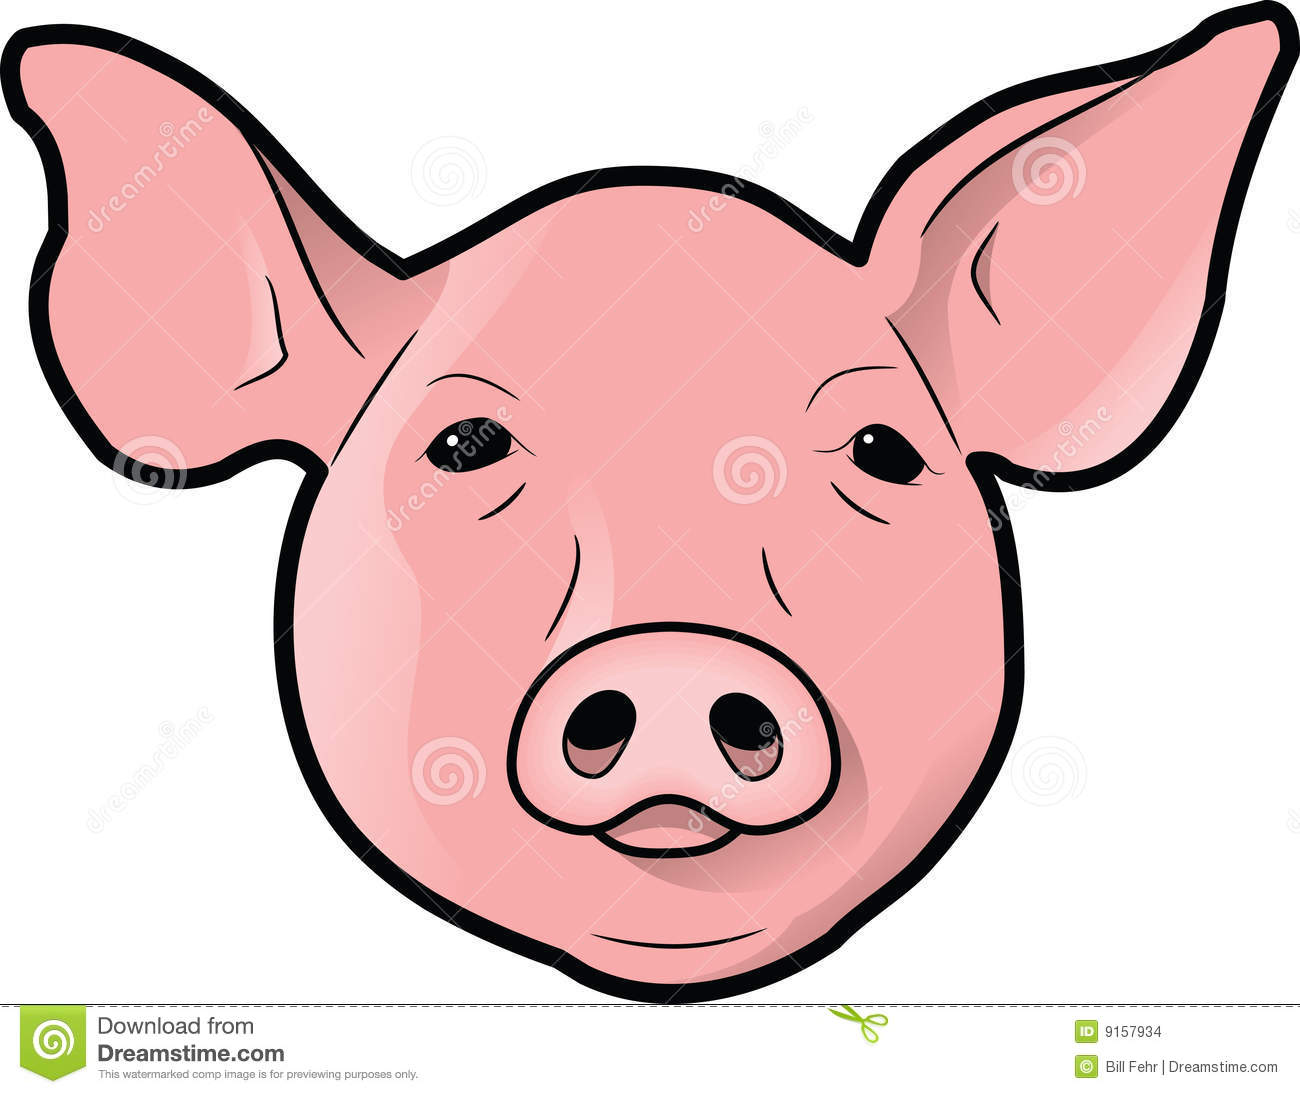 pig head clipart clipground Funny Pig Face Clip Art Cute Pig Face Clip Art